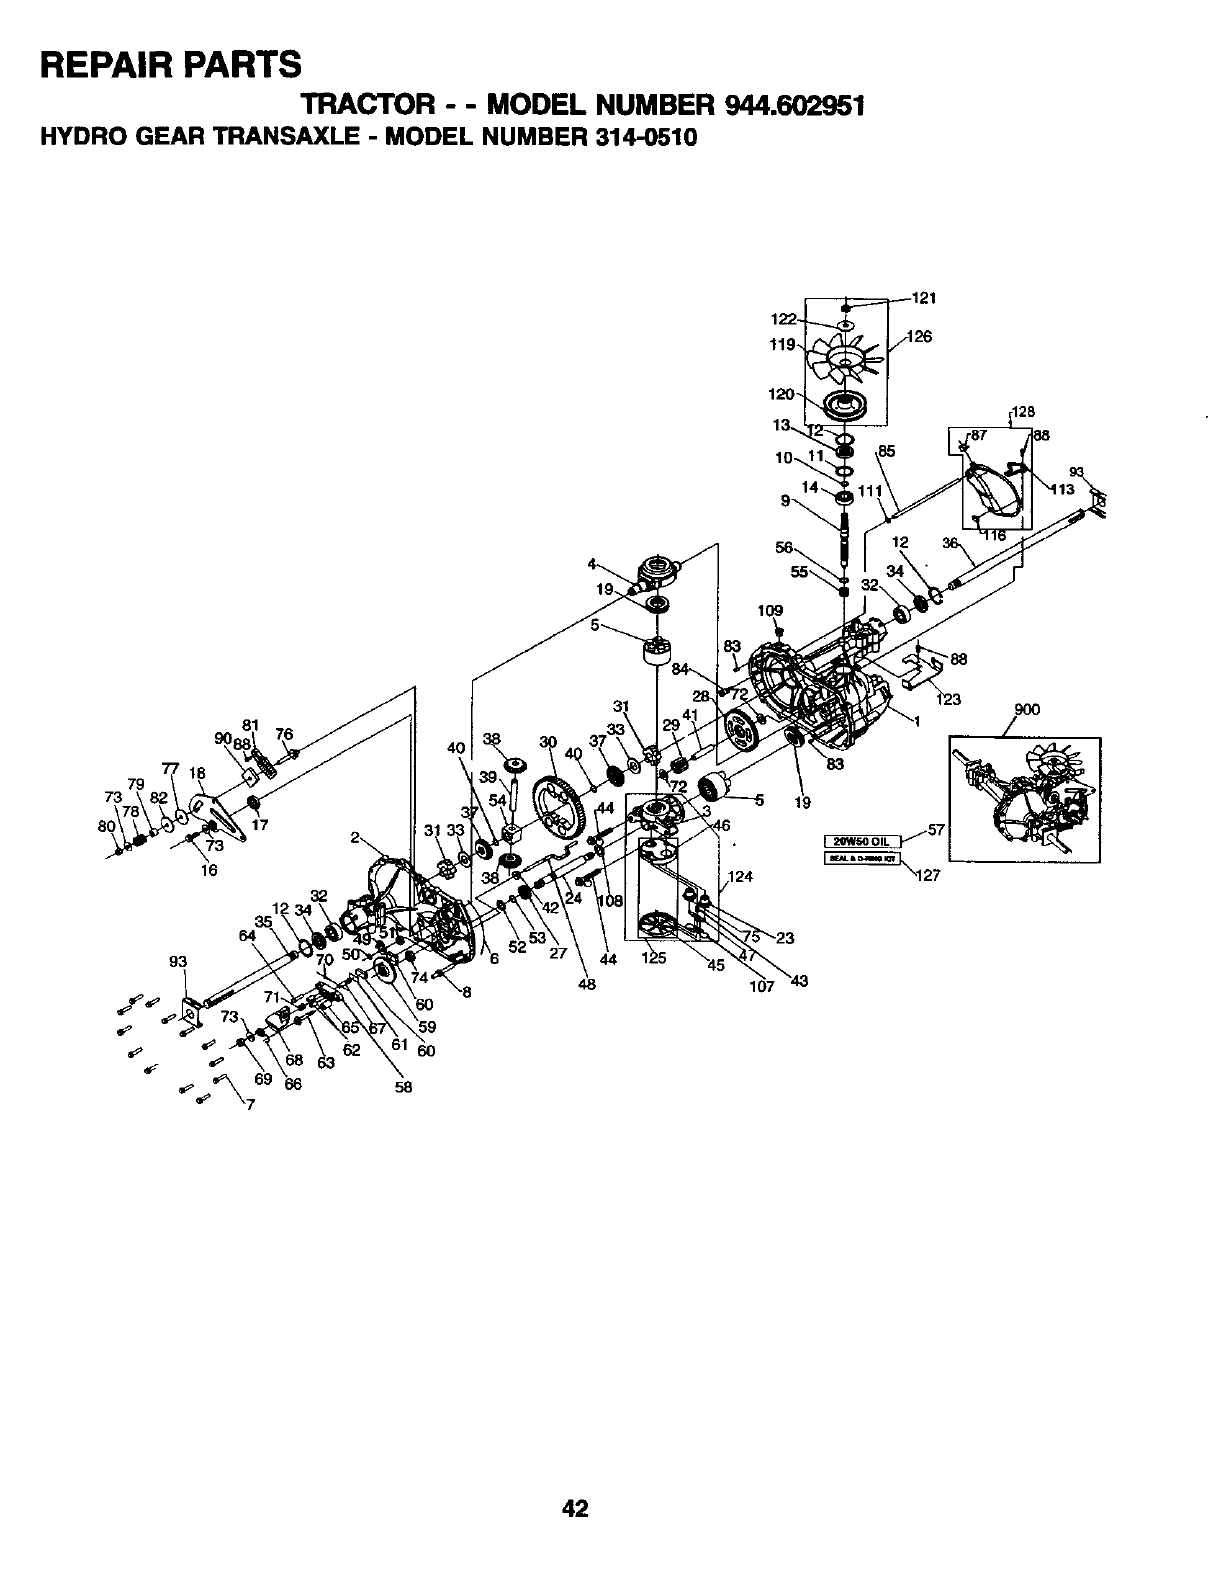 Page 42 of Craftsman Lawn Mower 944.602951 User Guide